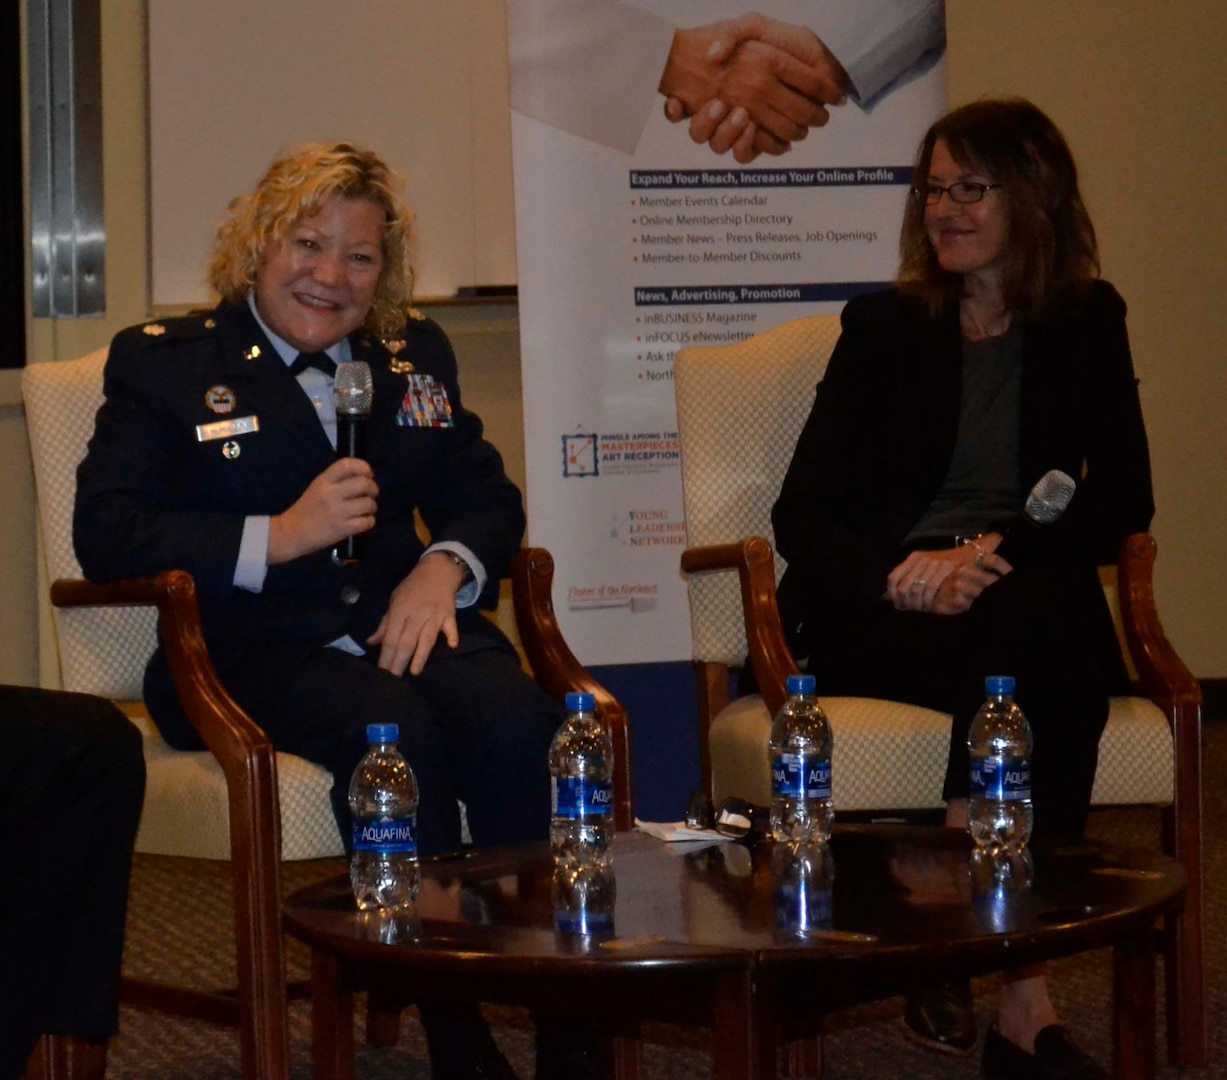 """Air Force Reserve Lt. Col. Susan McMullen, DLA Troop Support Project Manager, left, sits beside FBI Special Agent Cerena Coughlin, right, as she shares her personal story of being a woman in the military during the Greater Northeast Philadelphia Chamber of Commerce annual Women in Industry Day event Nov. 20, 2019 at Holy Family University in Philadelphia. The Women in Industry Day event aims to """"broaden the conversation"""" and expose women to various career opportunities. McMullen served as a panelist during the """"women in male-dominated industries"""" discussion. (Photo by Alexandria Brimage-Gray)"""